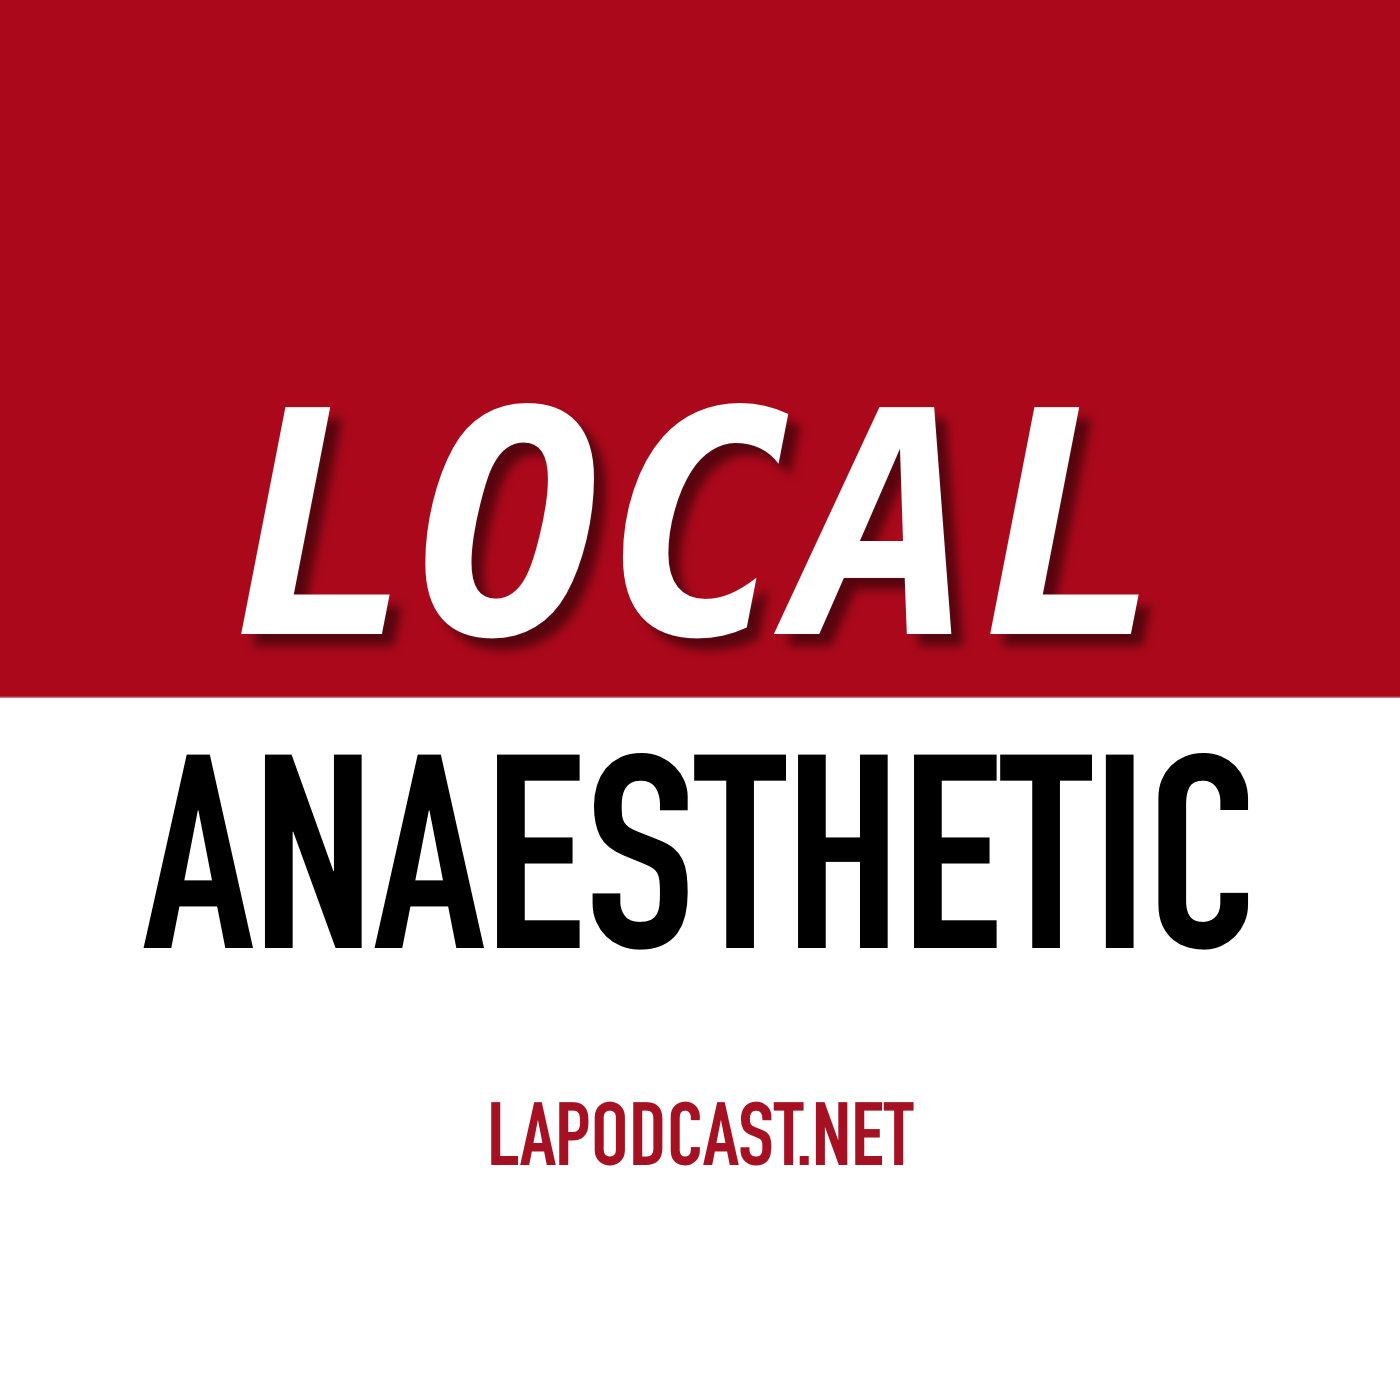 LAPodcast (Local Anaesthetic Podcast) - The Most Trusted Name in Local News